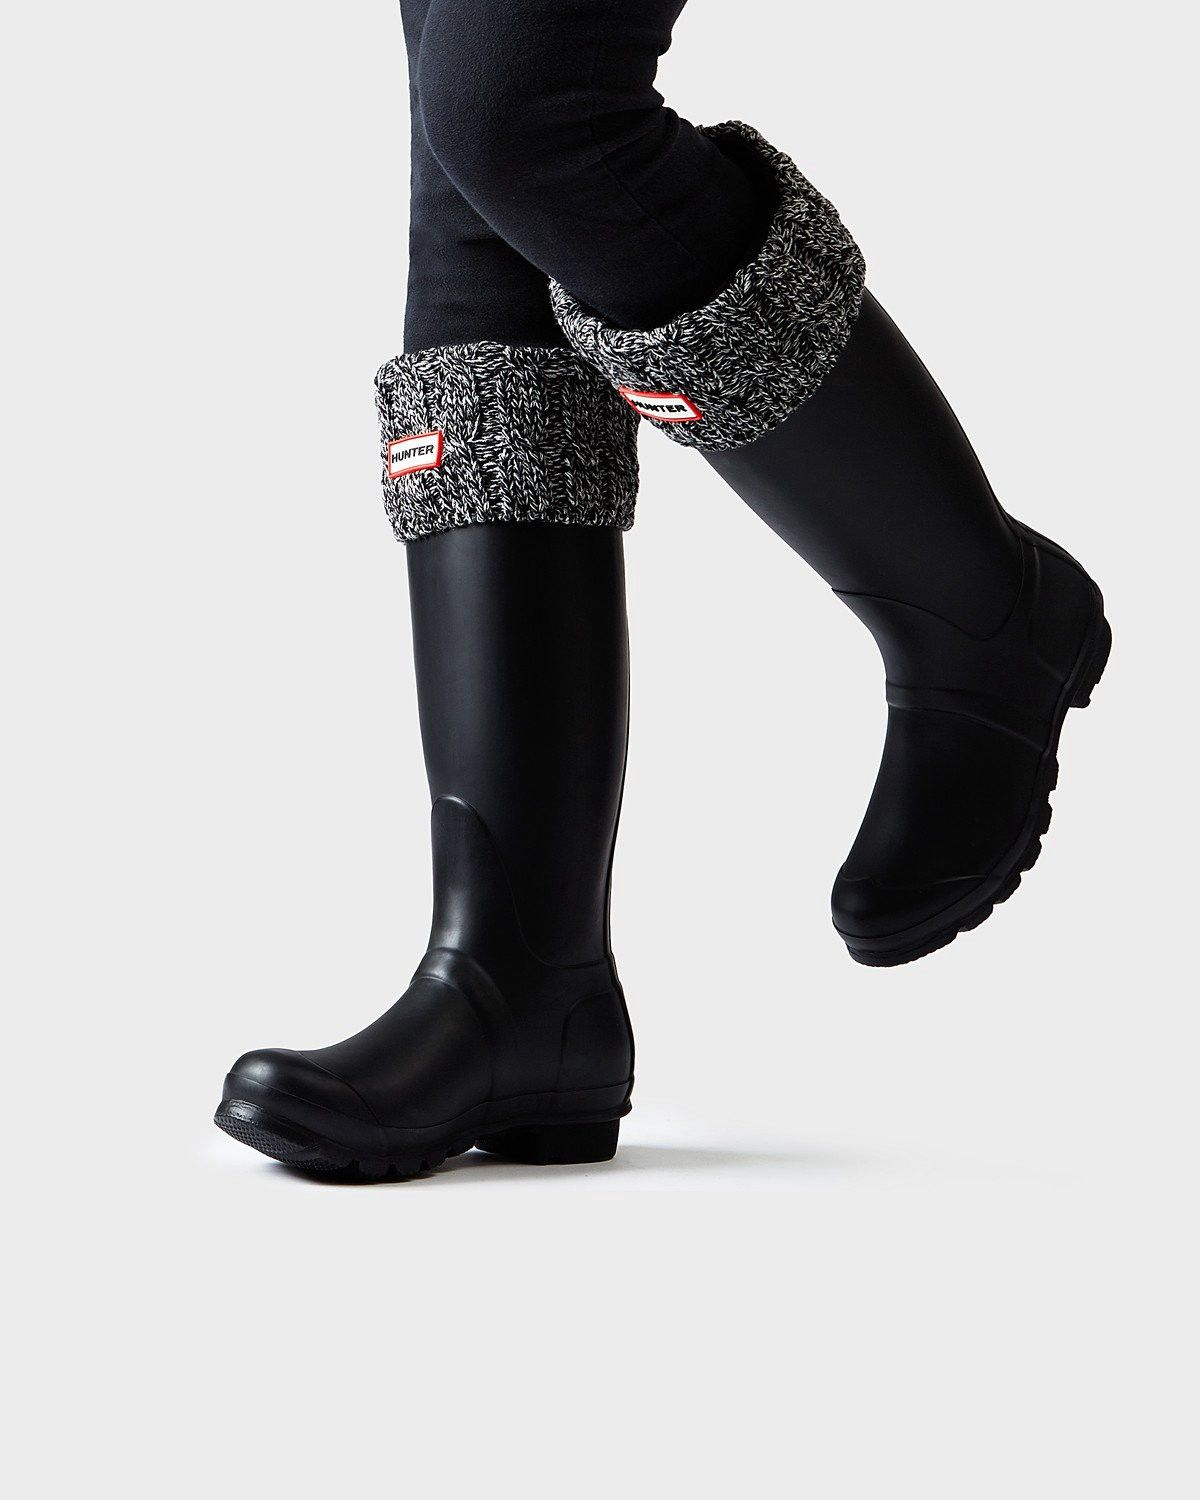 88bb61d7c5b73 Hunter Original Six-Stitch Cable Boot Socks: Black/Grey - M in 2019 ...